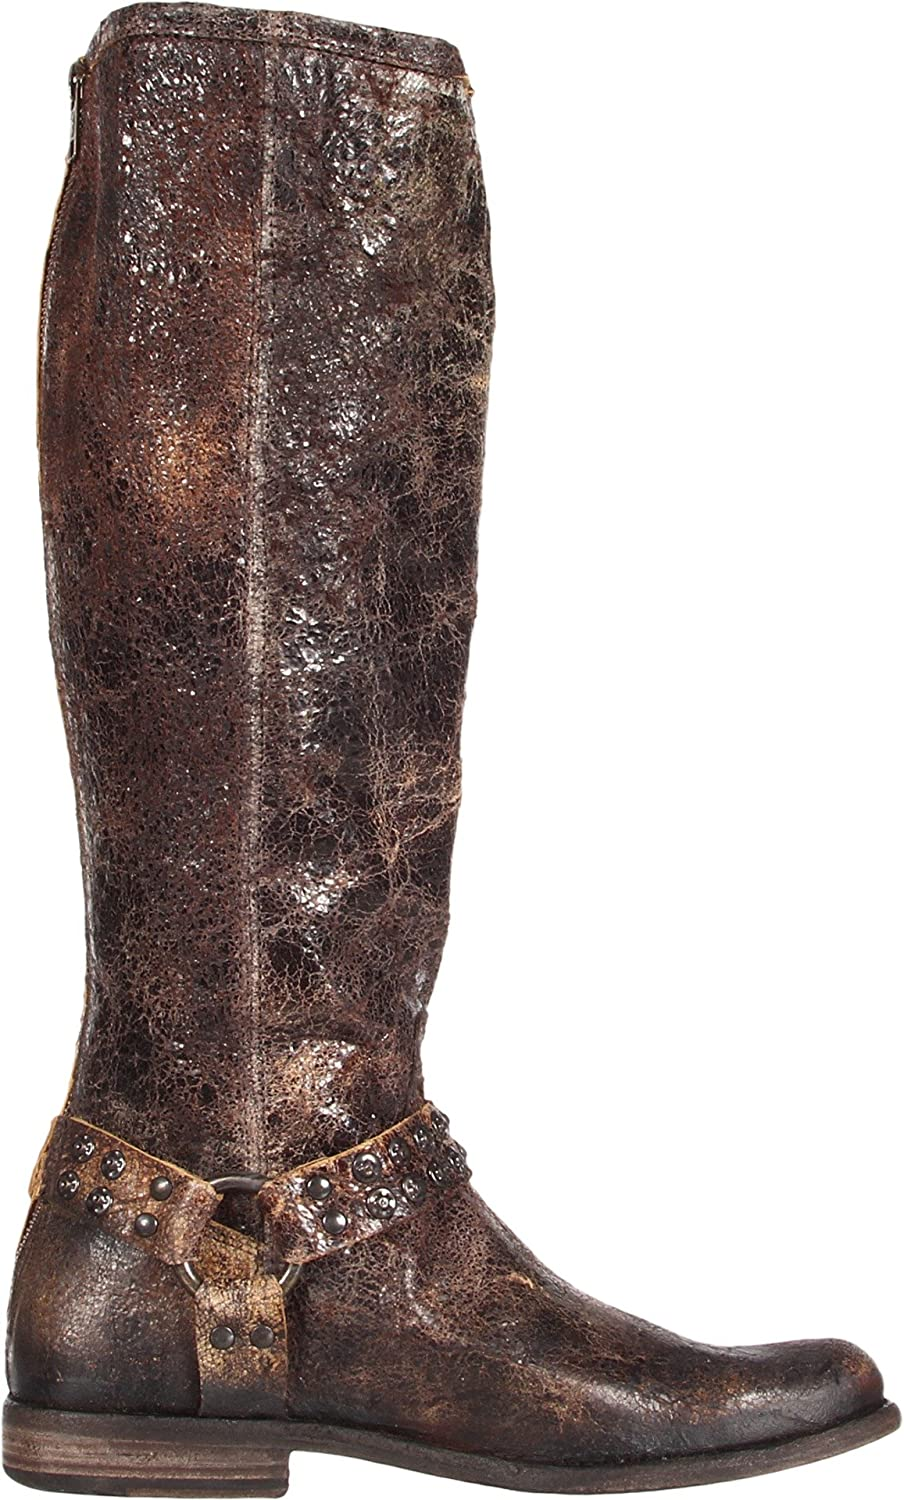 FRYE Women's Phillip Studded Harness Tall Boot B006NZG4L0 5.5 B(M) US|Chocolate Glazed Vintage Leather